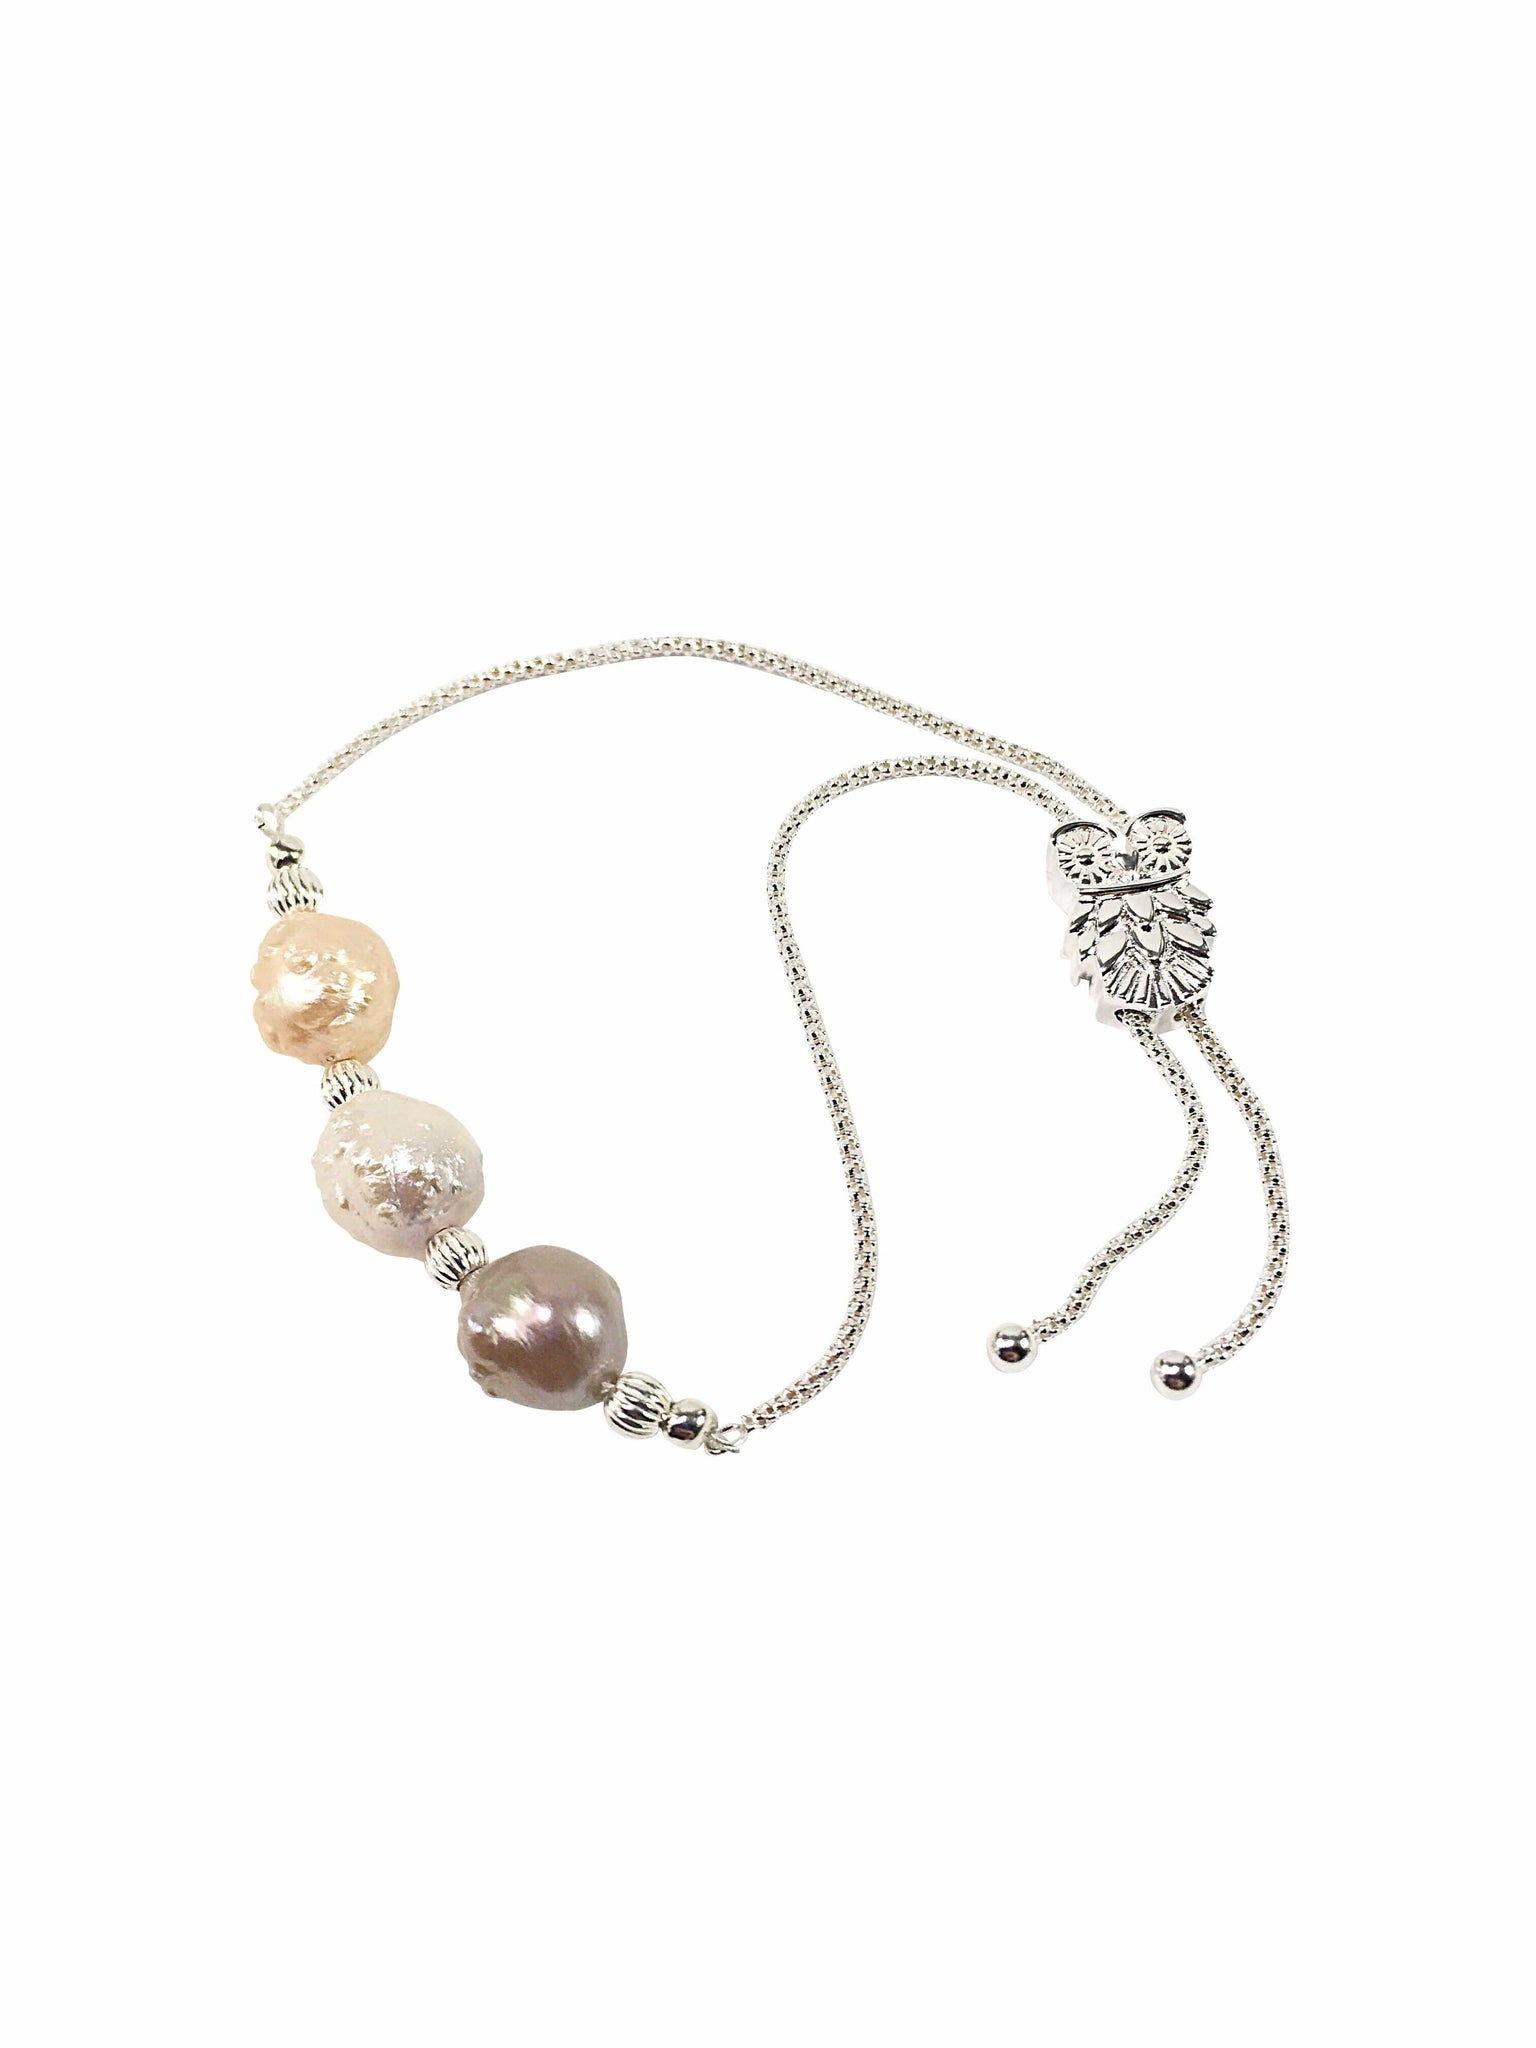 Handmade Sterling Silver And Pearl Bracelet